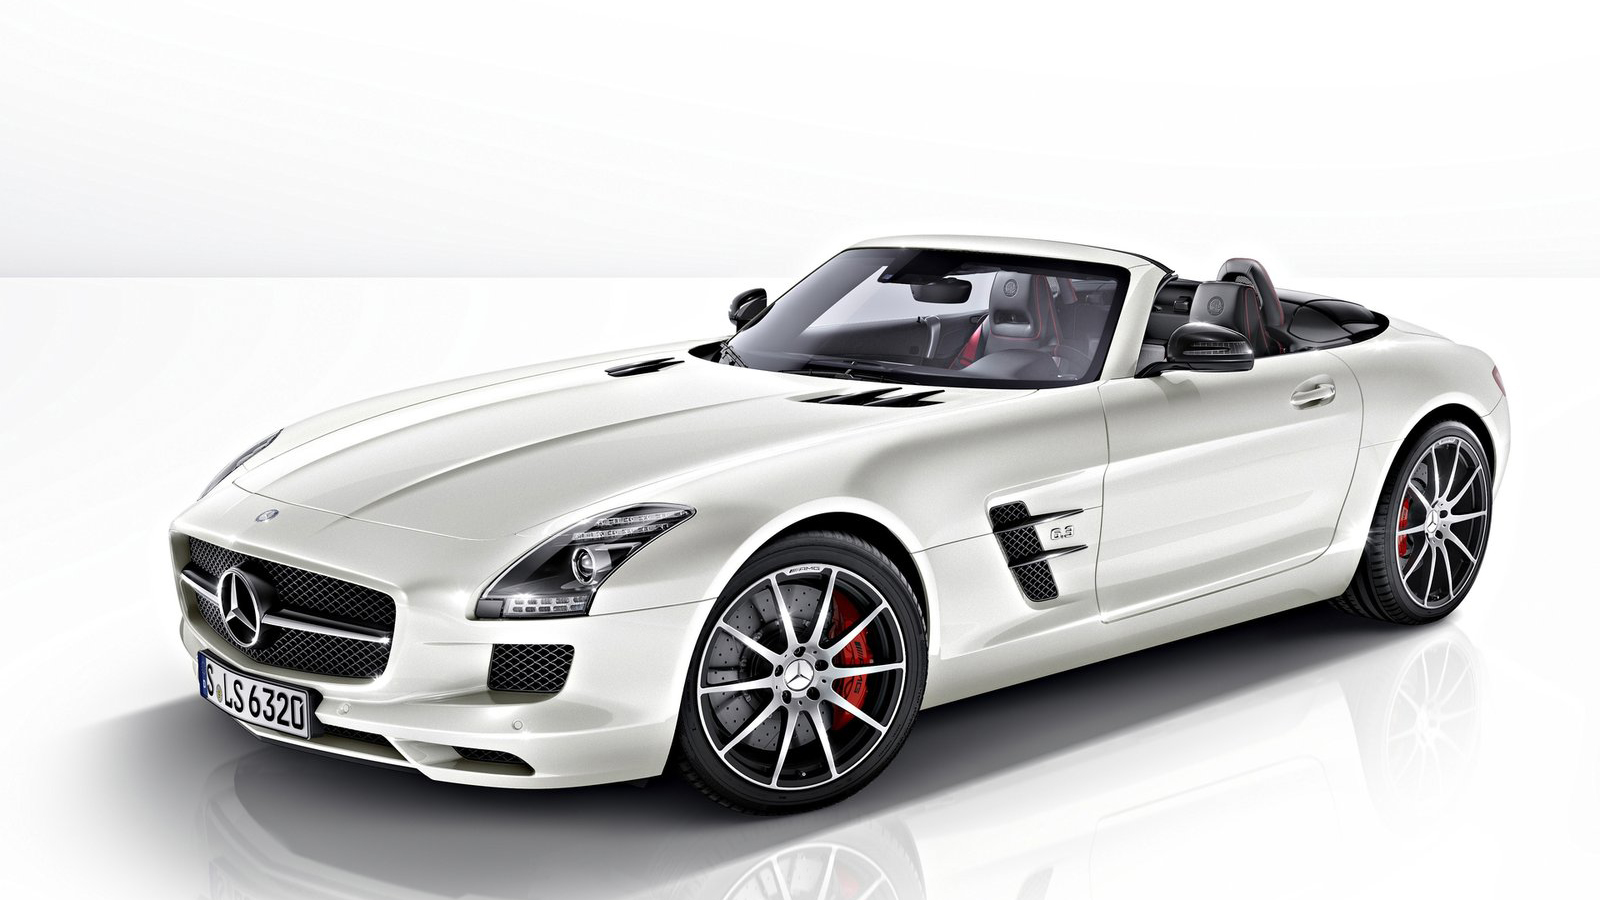 2013 mercedes benz sls amg gt 6 3 v8 591 hp 320 kmh 0 100 for Mercedes benz amg 6 3